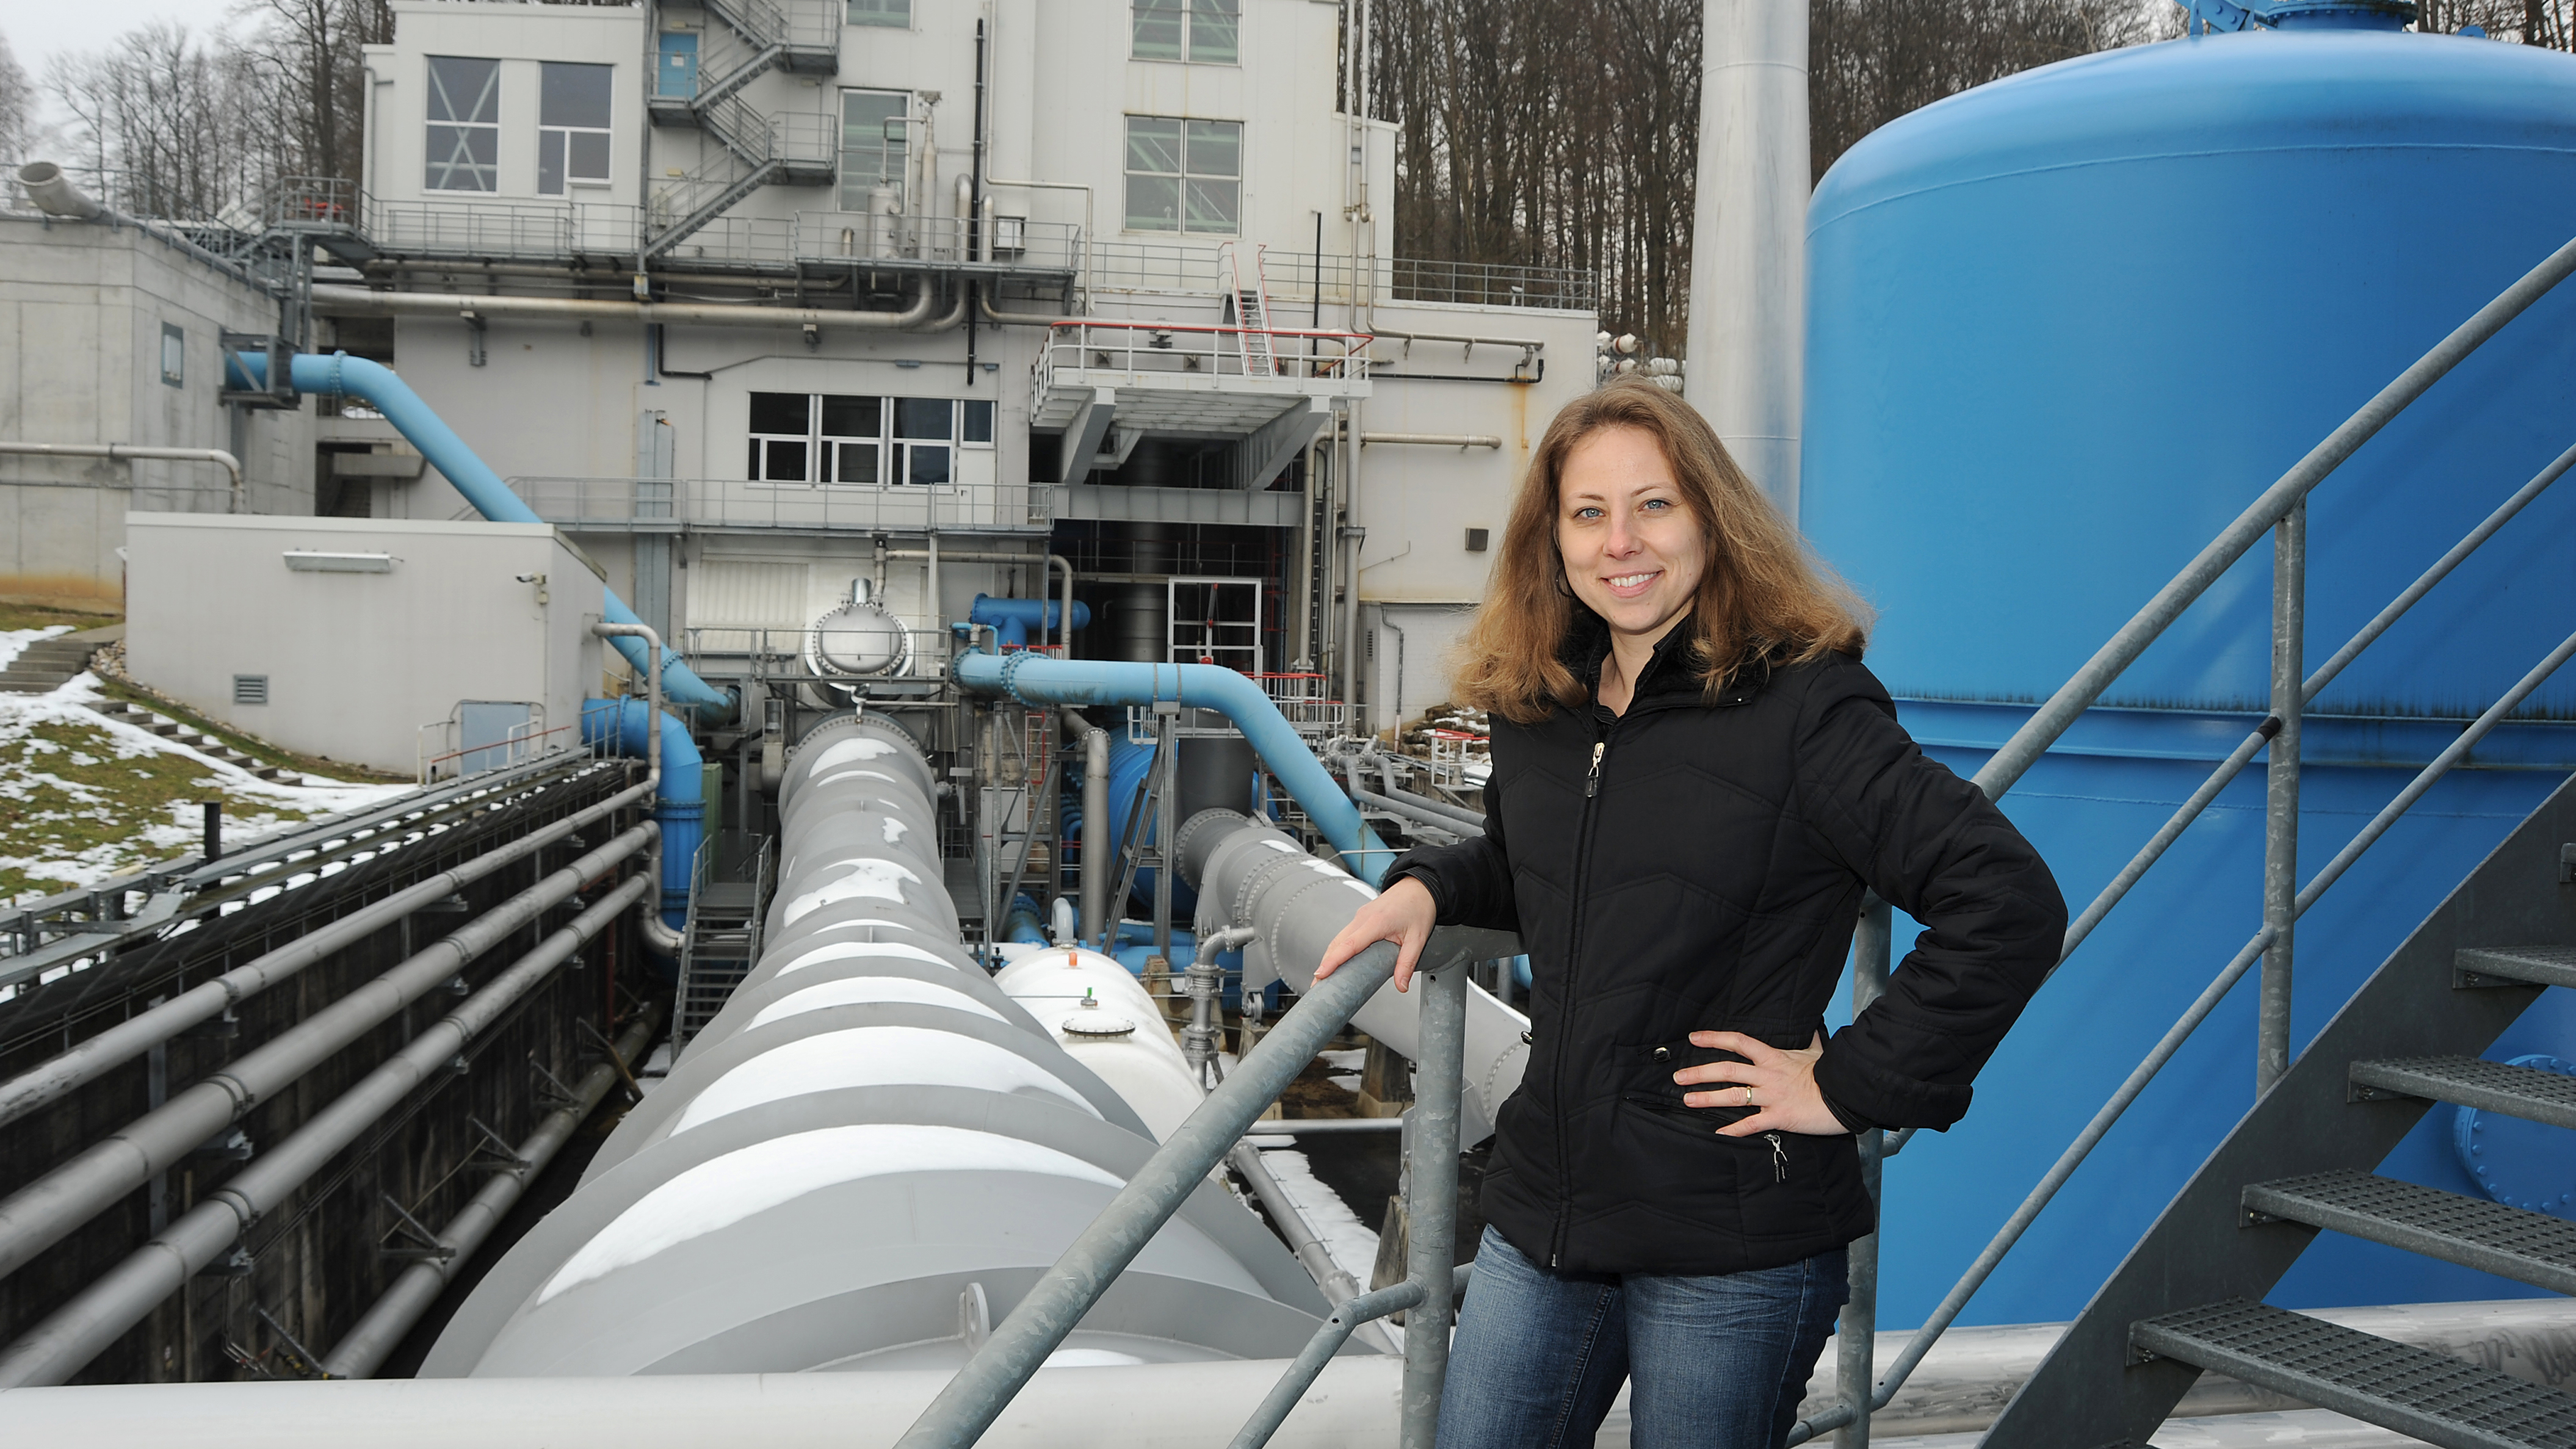 Mistress of test stands and steam generators  Anja Frank